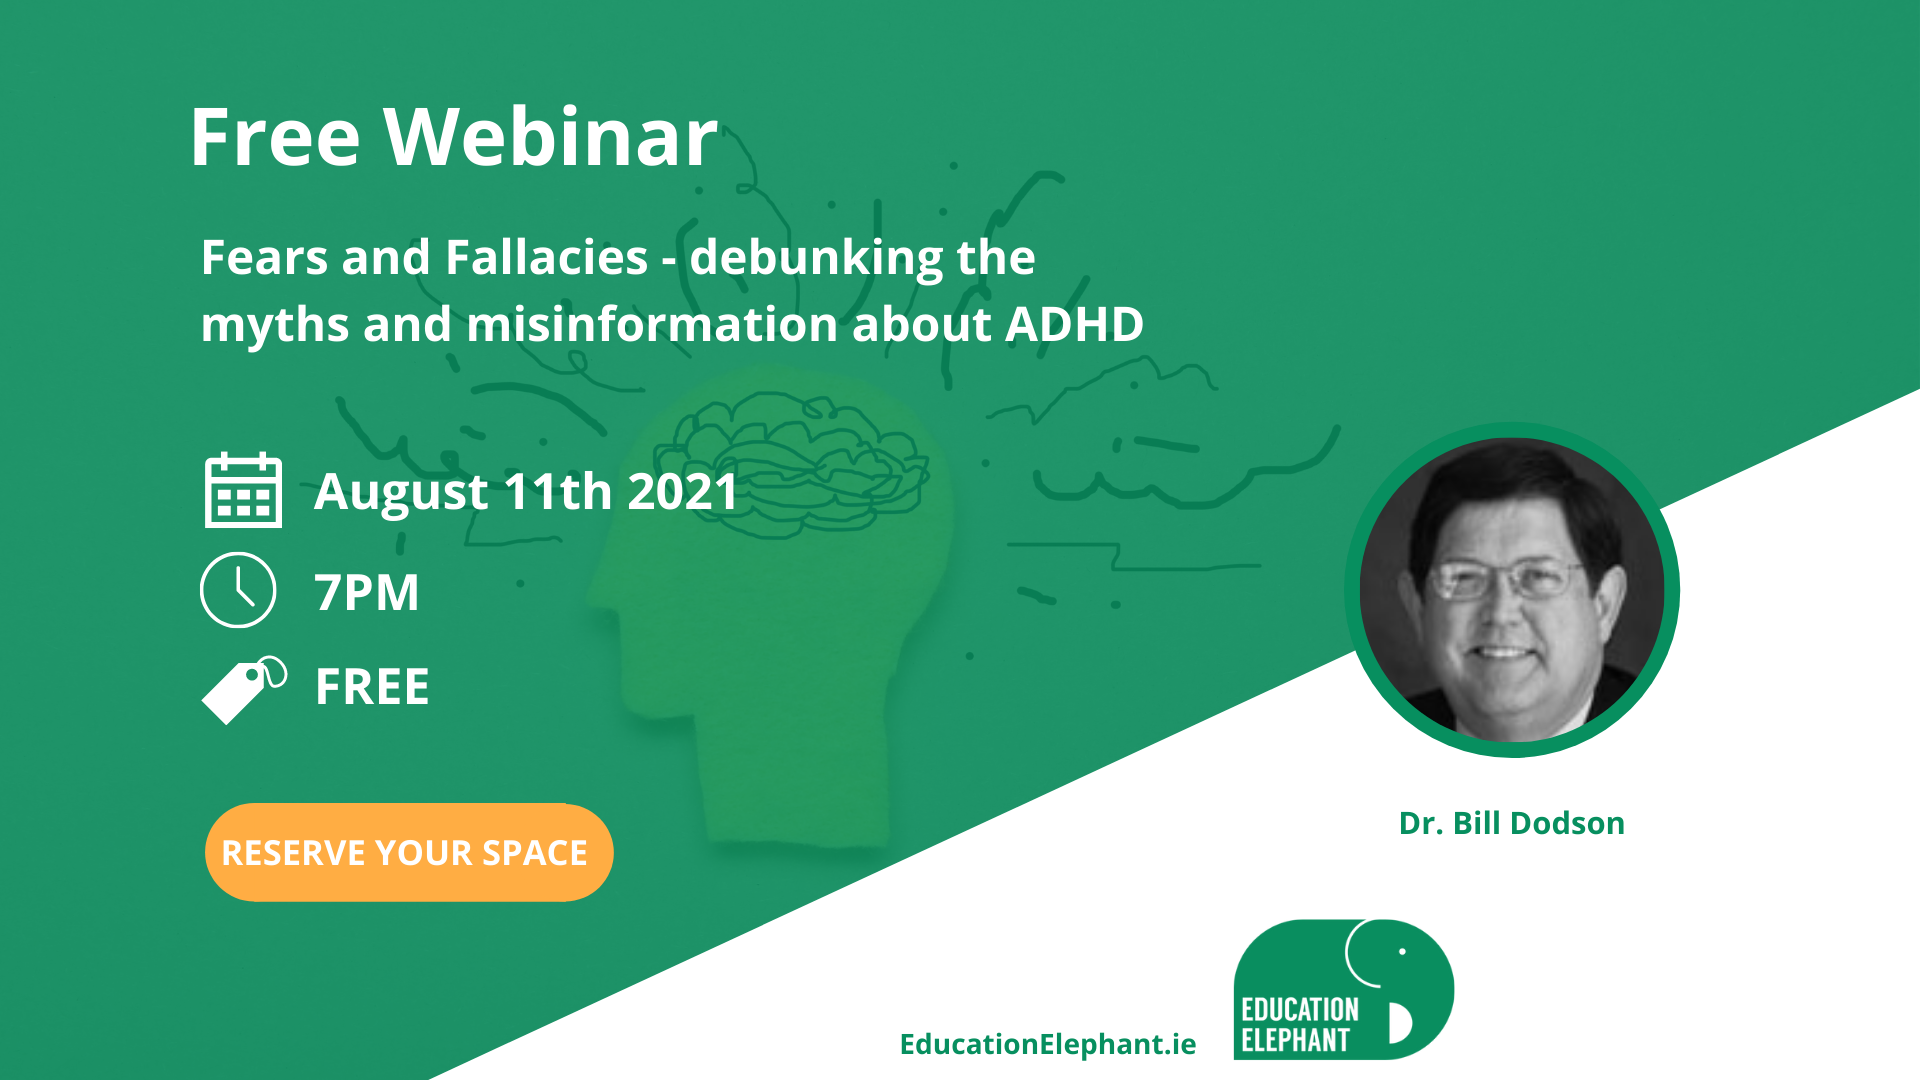 Fears and Fallacies - debunking the myths and misinformation about ADHD